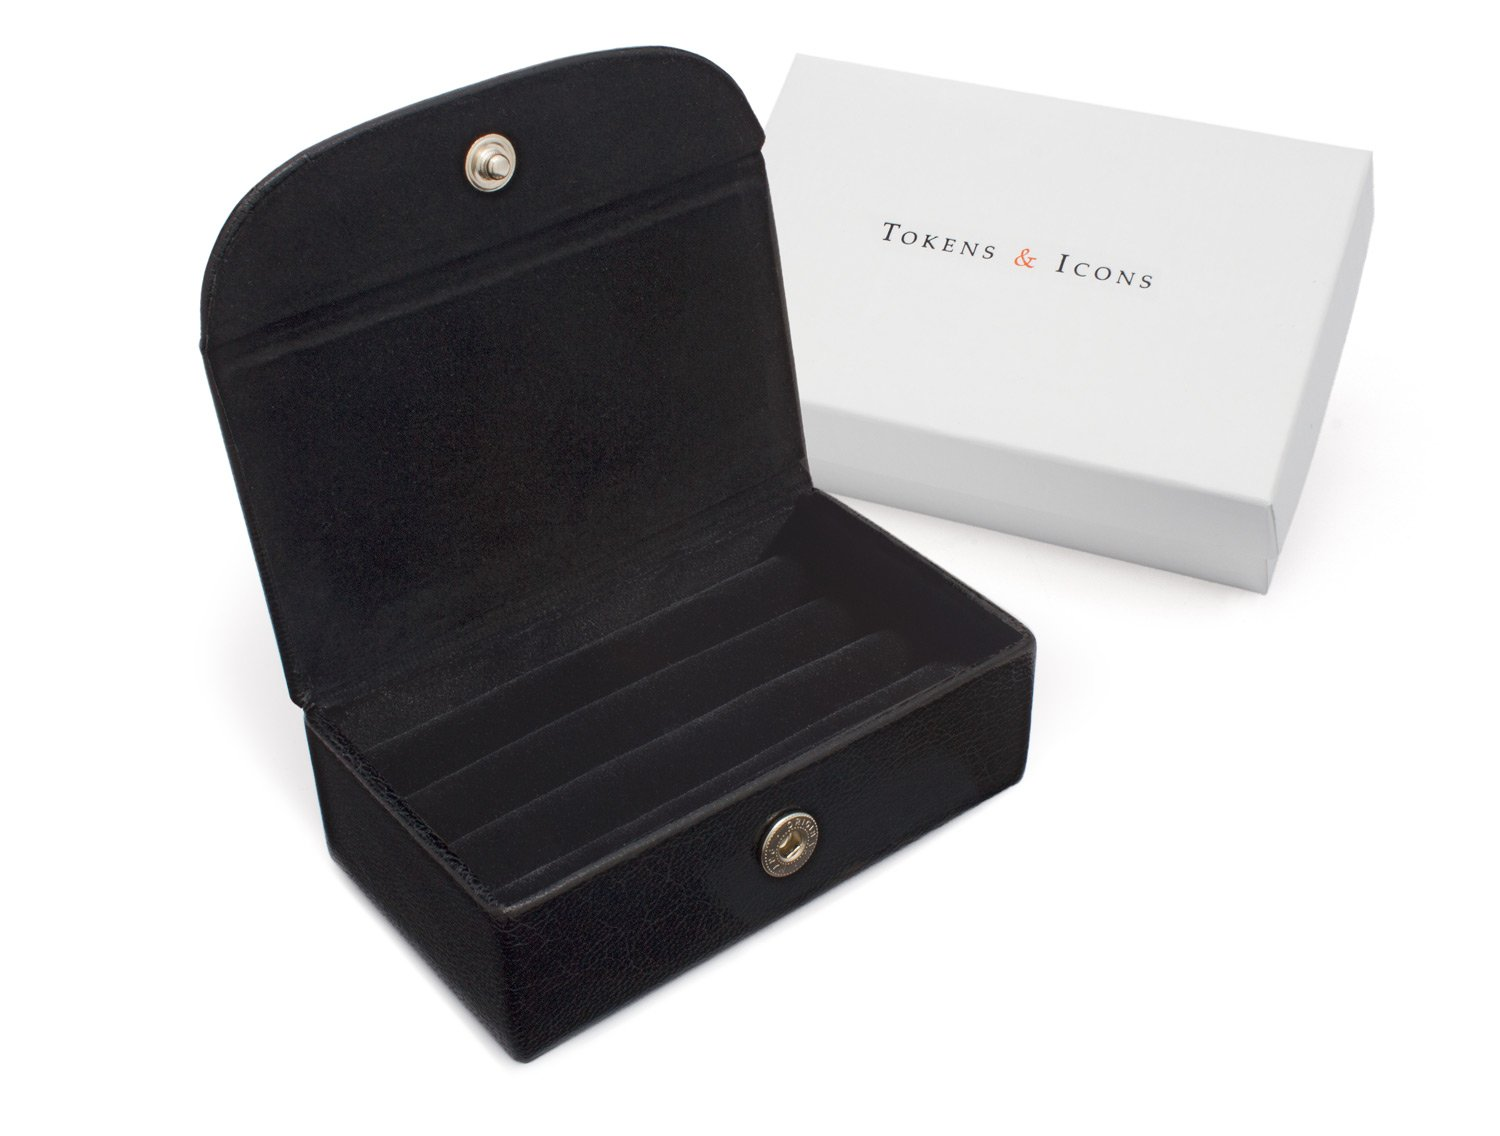 Tokens & Icons 3 Pair Cufflinks Travel Case (803),Black,One Size